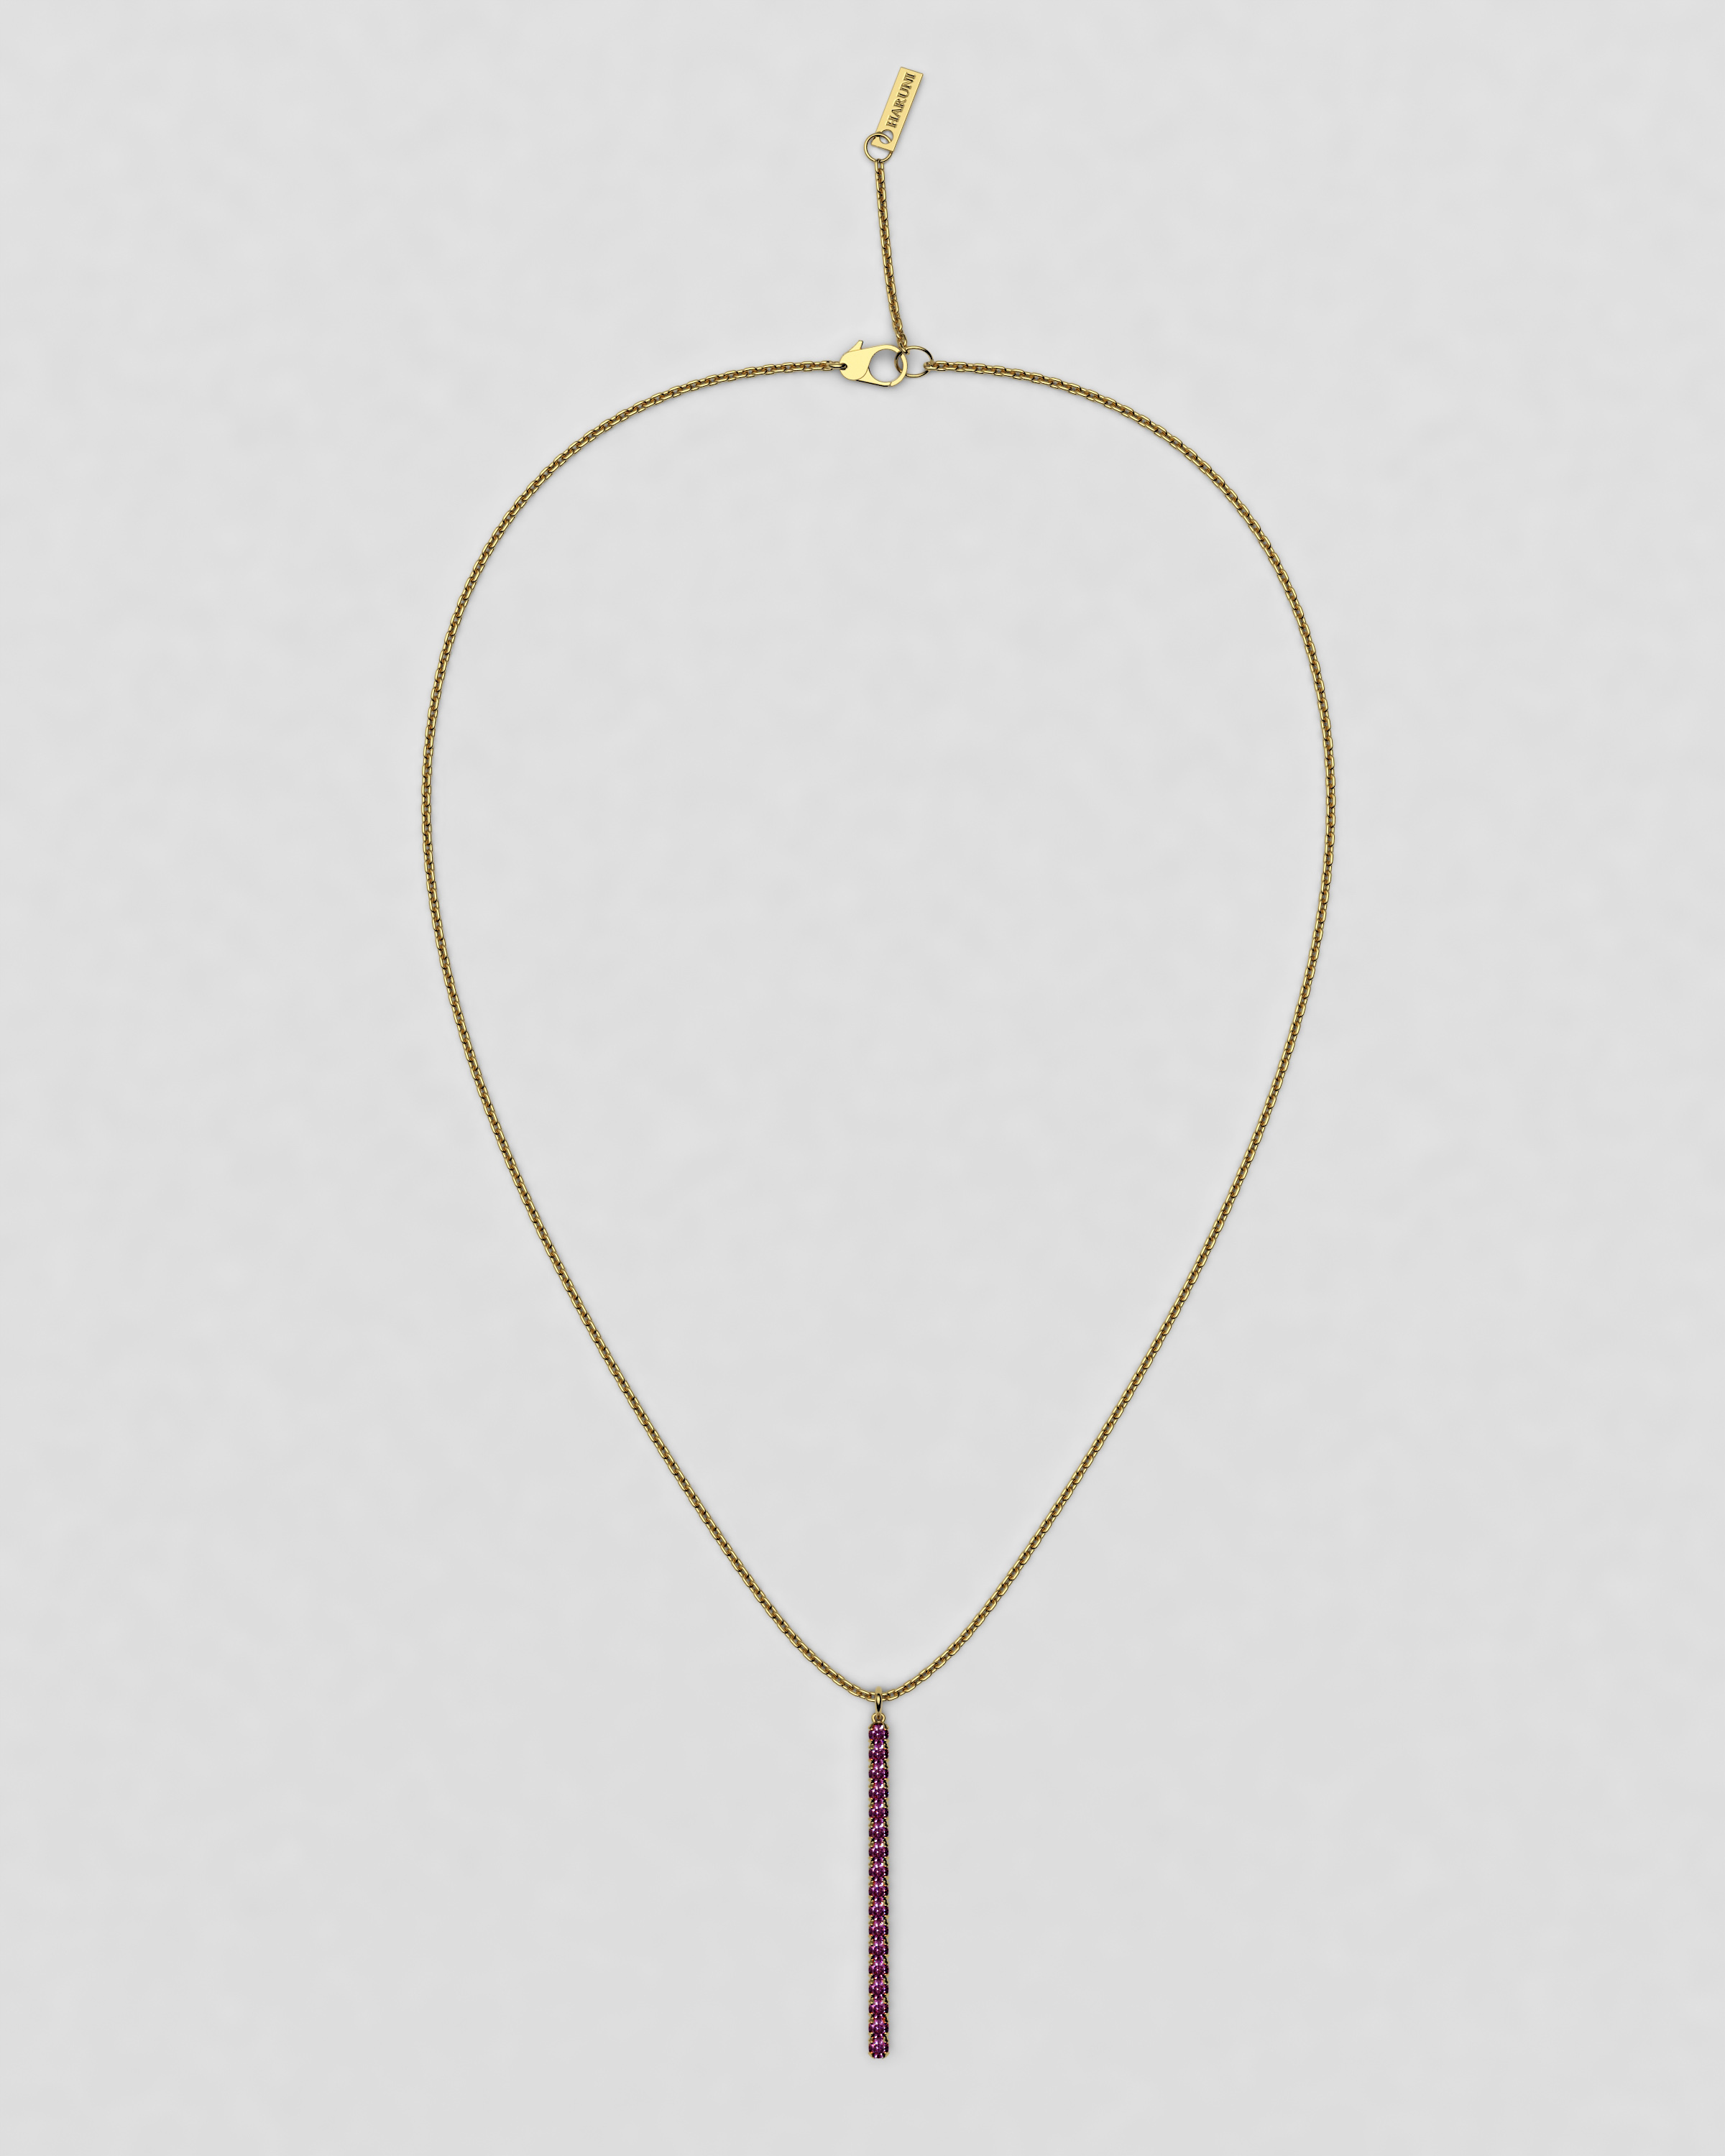 blossom necklace and long pendant  - fuchsia pink ruby and 18k yellow gold